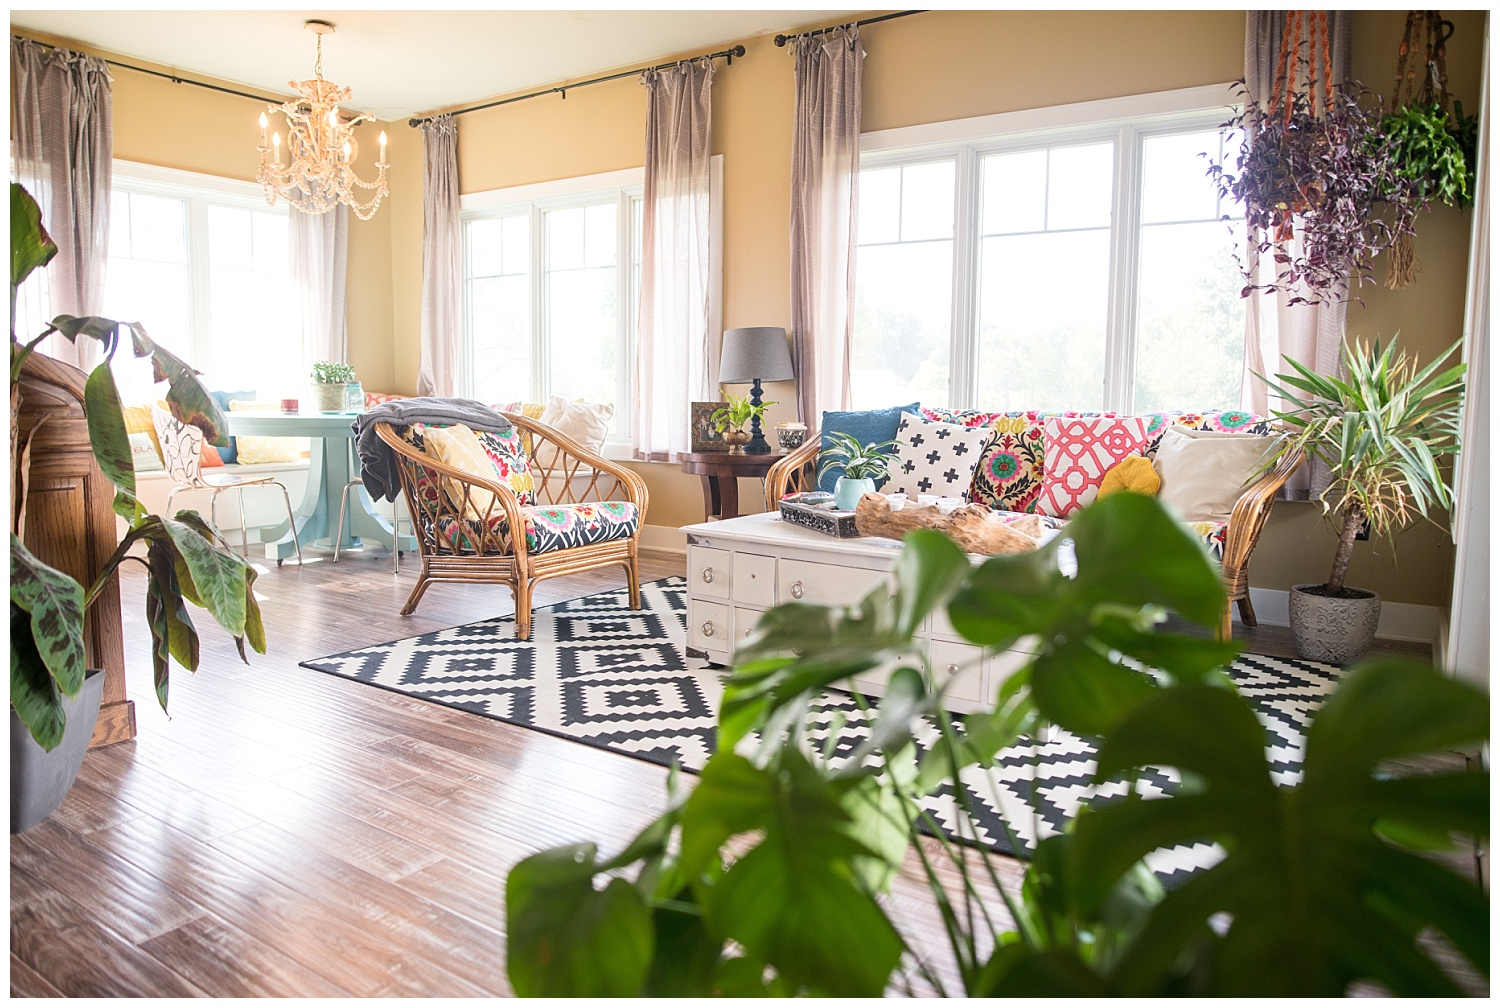 Colorful meets natural meets plants.  How fabulous is this sunroom?  So bright and airy.